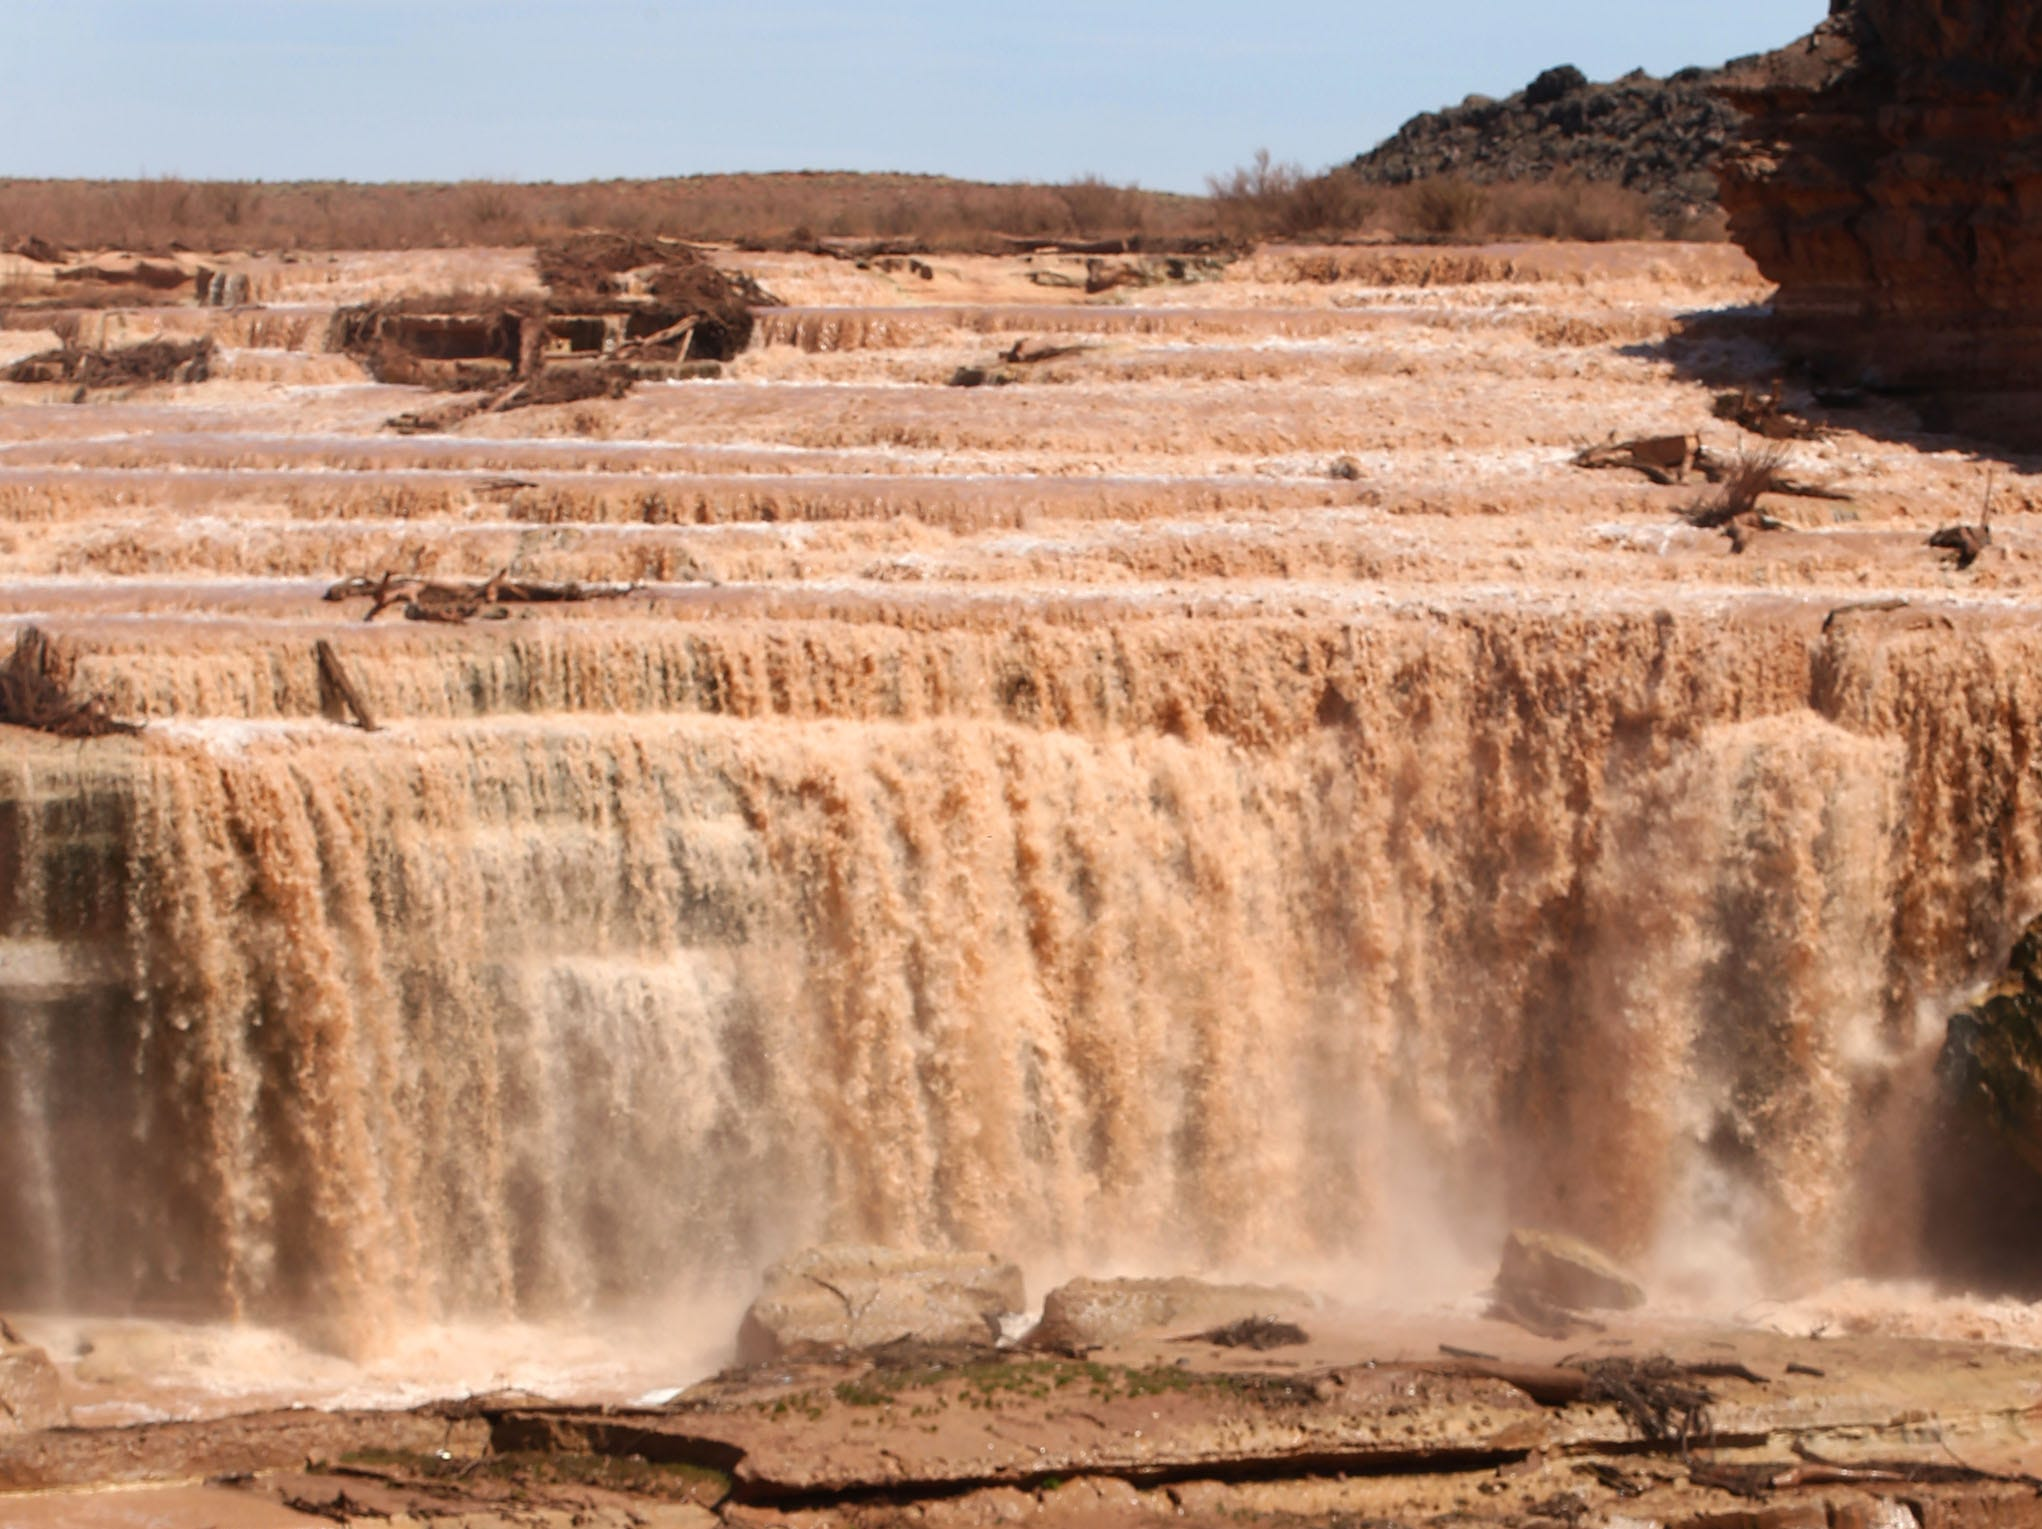 Sunny St. John of Phoenix photographs Grand Falls in the Painted Desert on the Navajo Nation on March 28, 2019, near Leupp, Arizona. Melted snow and rain travels down the Little Colorado River to the 185-foot fall a.k.a. Chocolate Falls. Grand Falls is 18 feet taller than Niagara Falls.